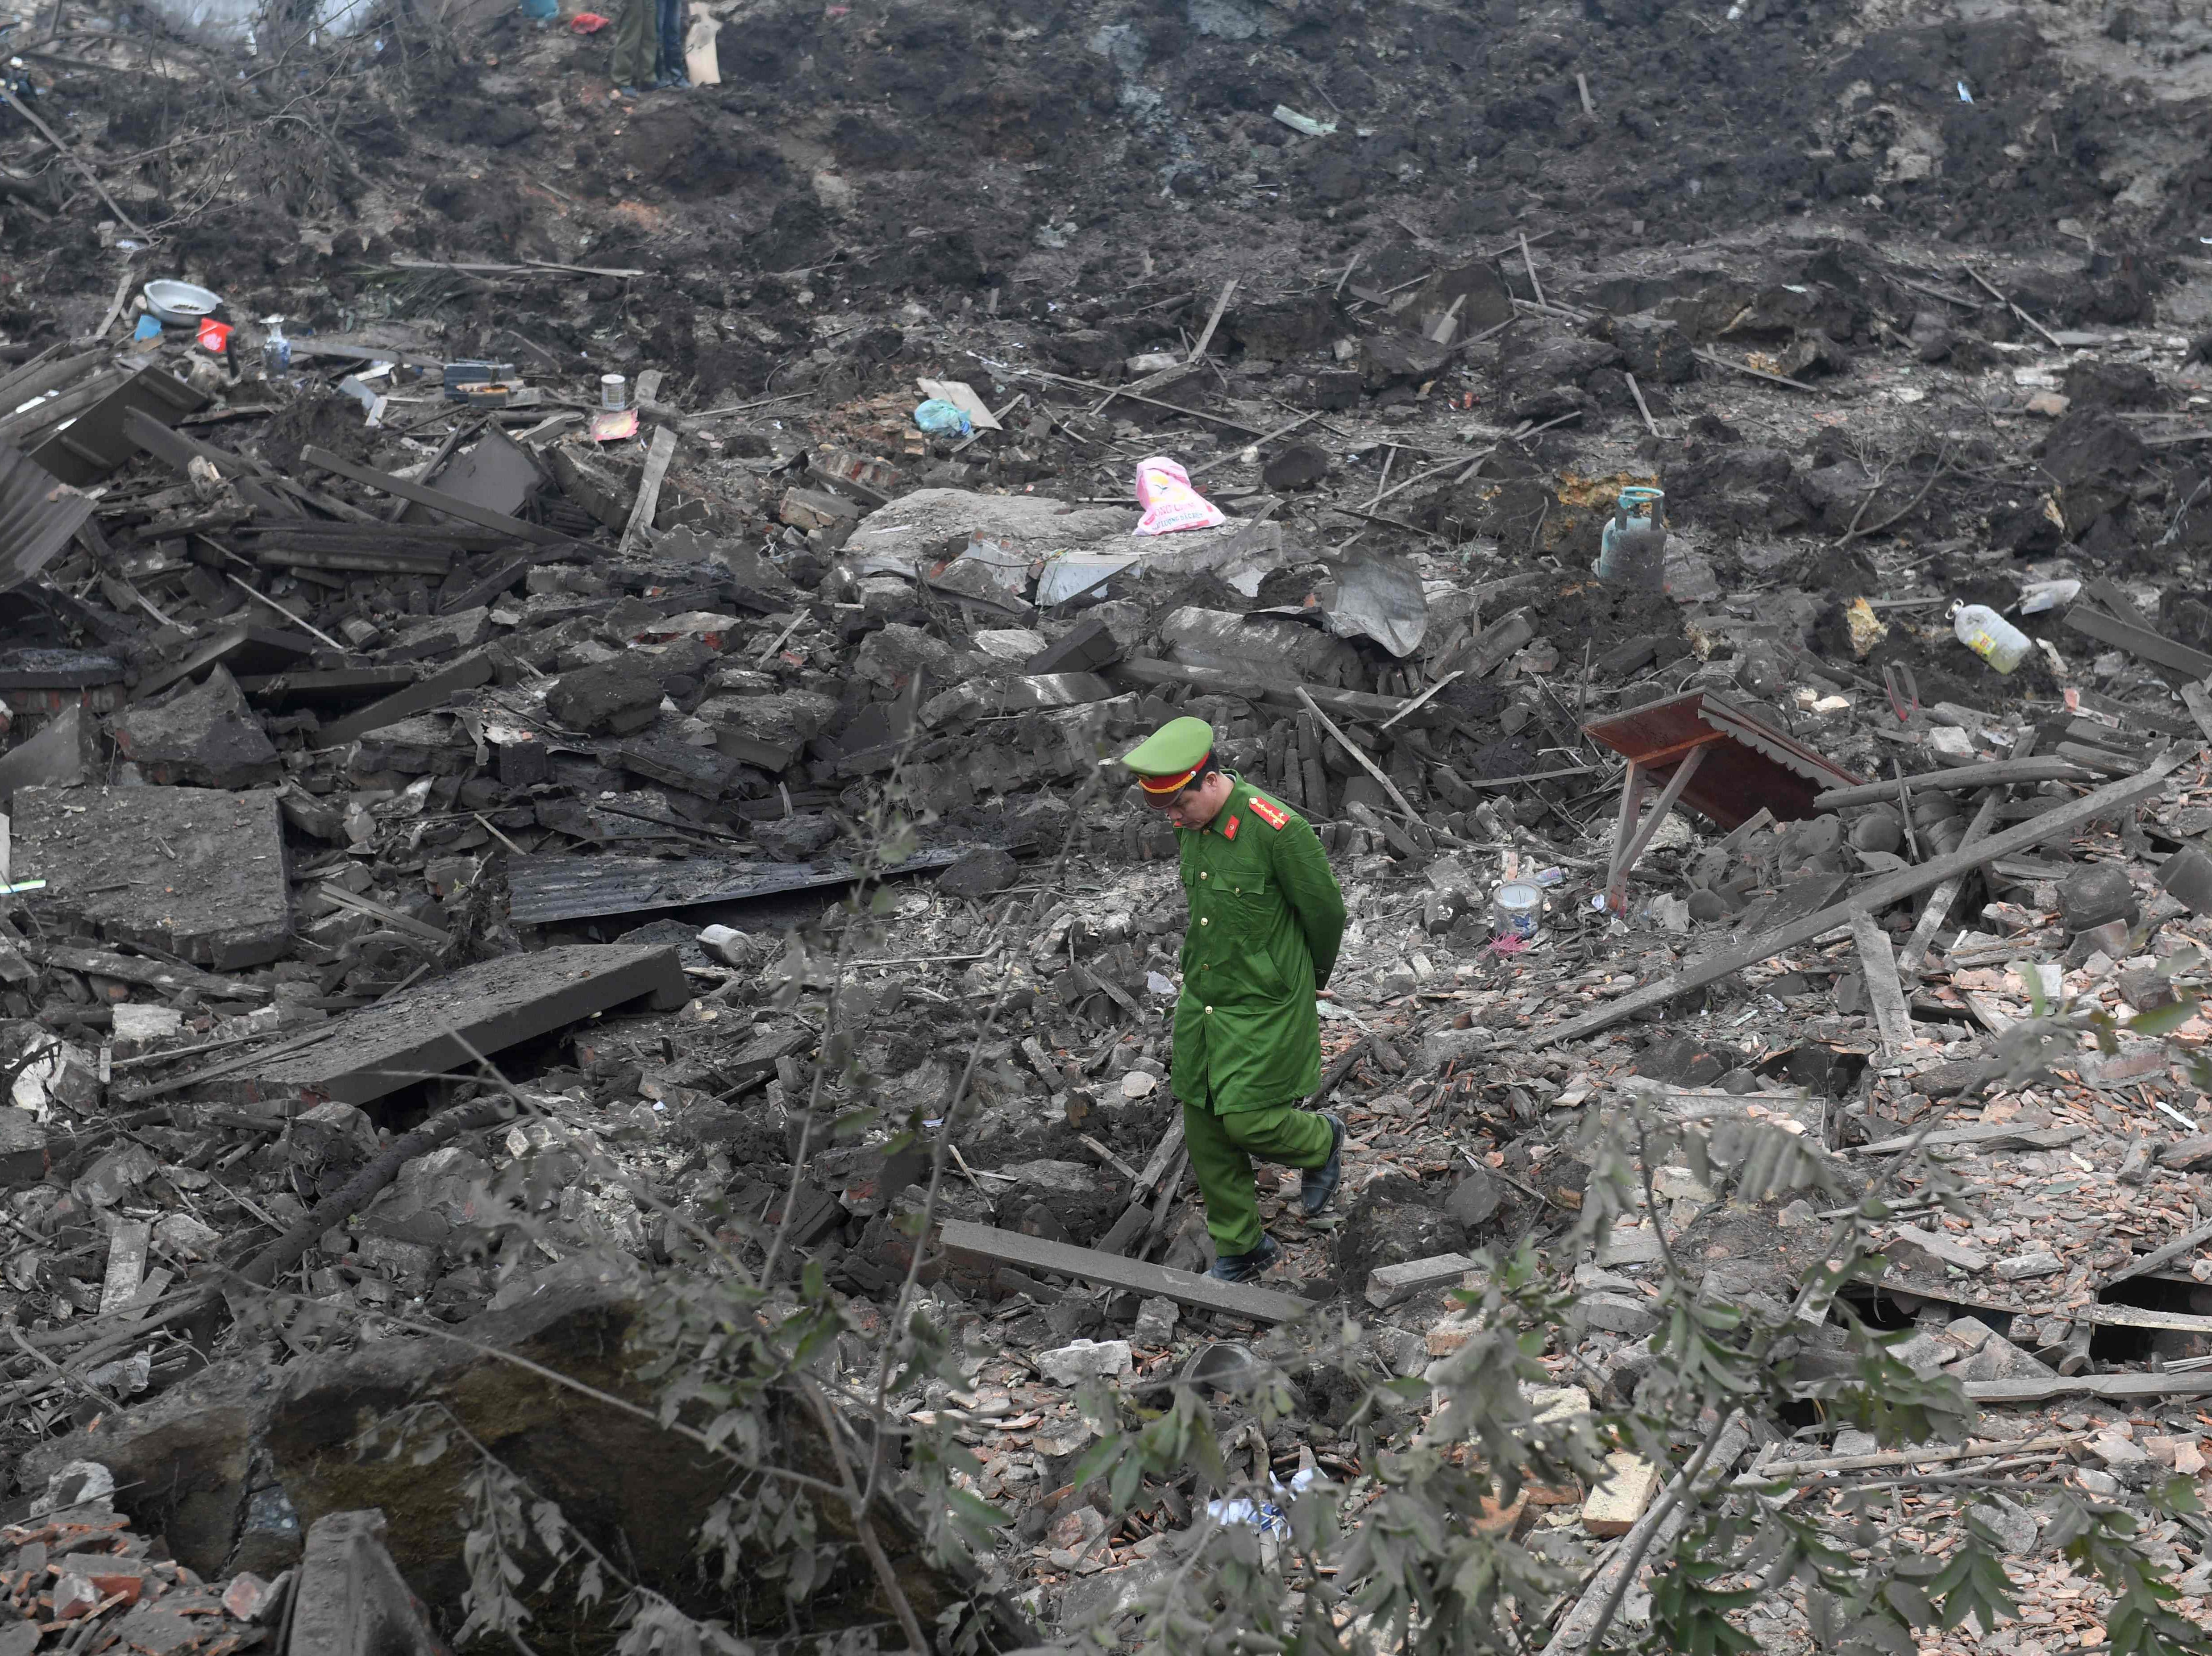 Jan. 3, 2018: A policeman walks across debris after a big explosion razed five homes and shattered windows of surrounding buildings in the northern province of Bac Ninh, Vietnam.